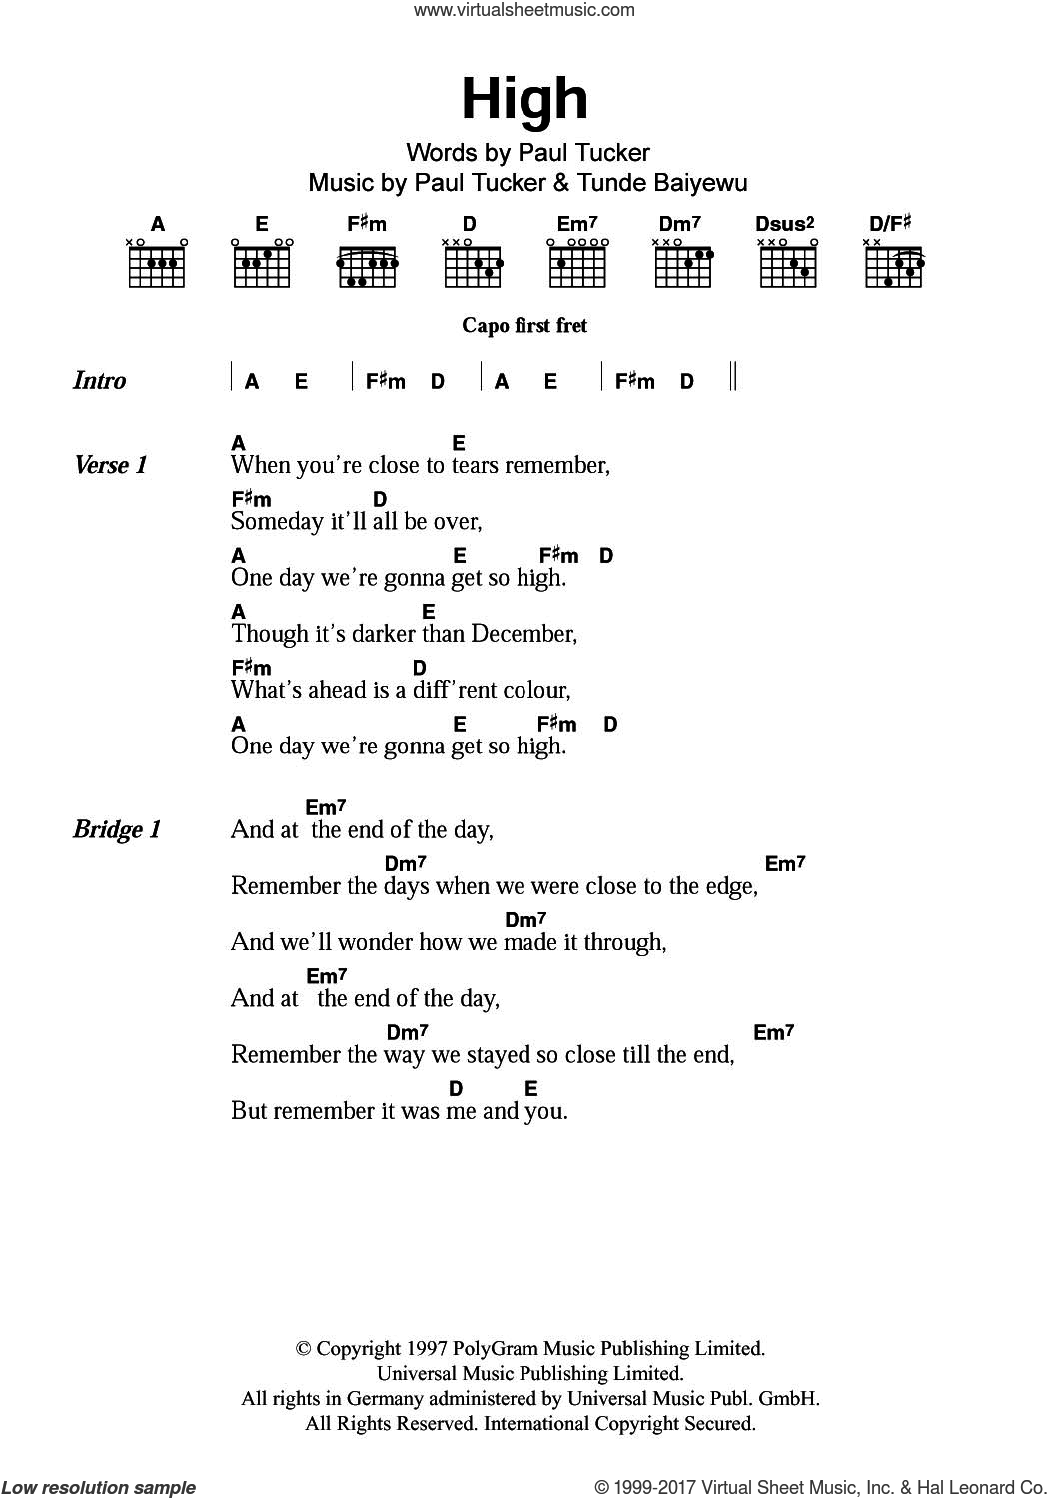 Family High Sheet Music For Guitar Chords Pdf